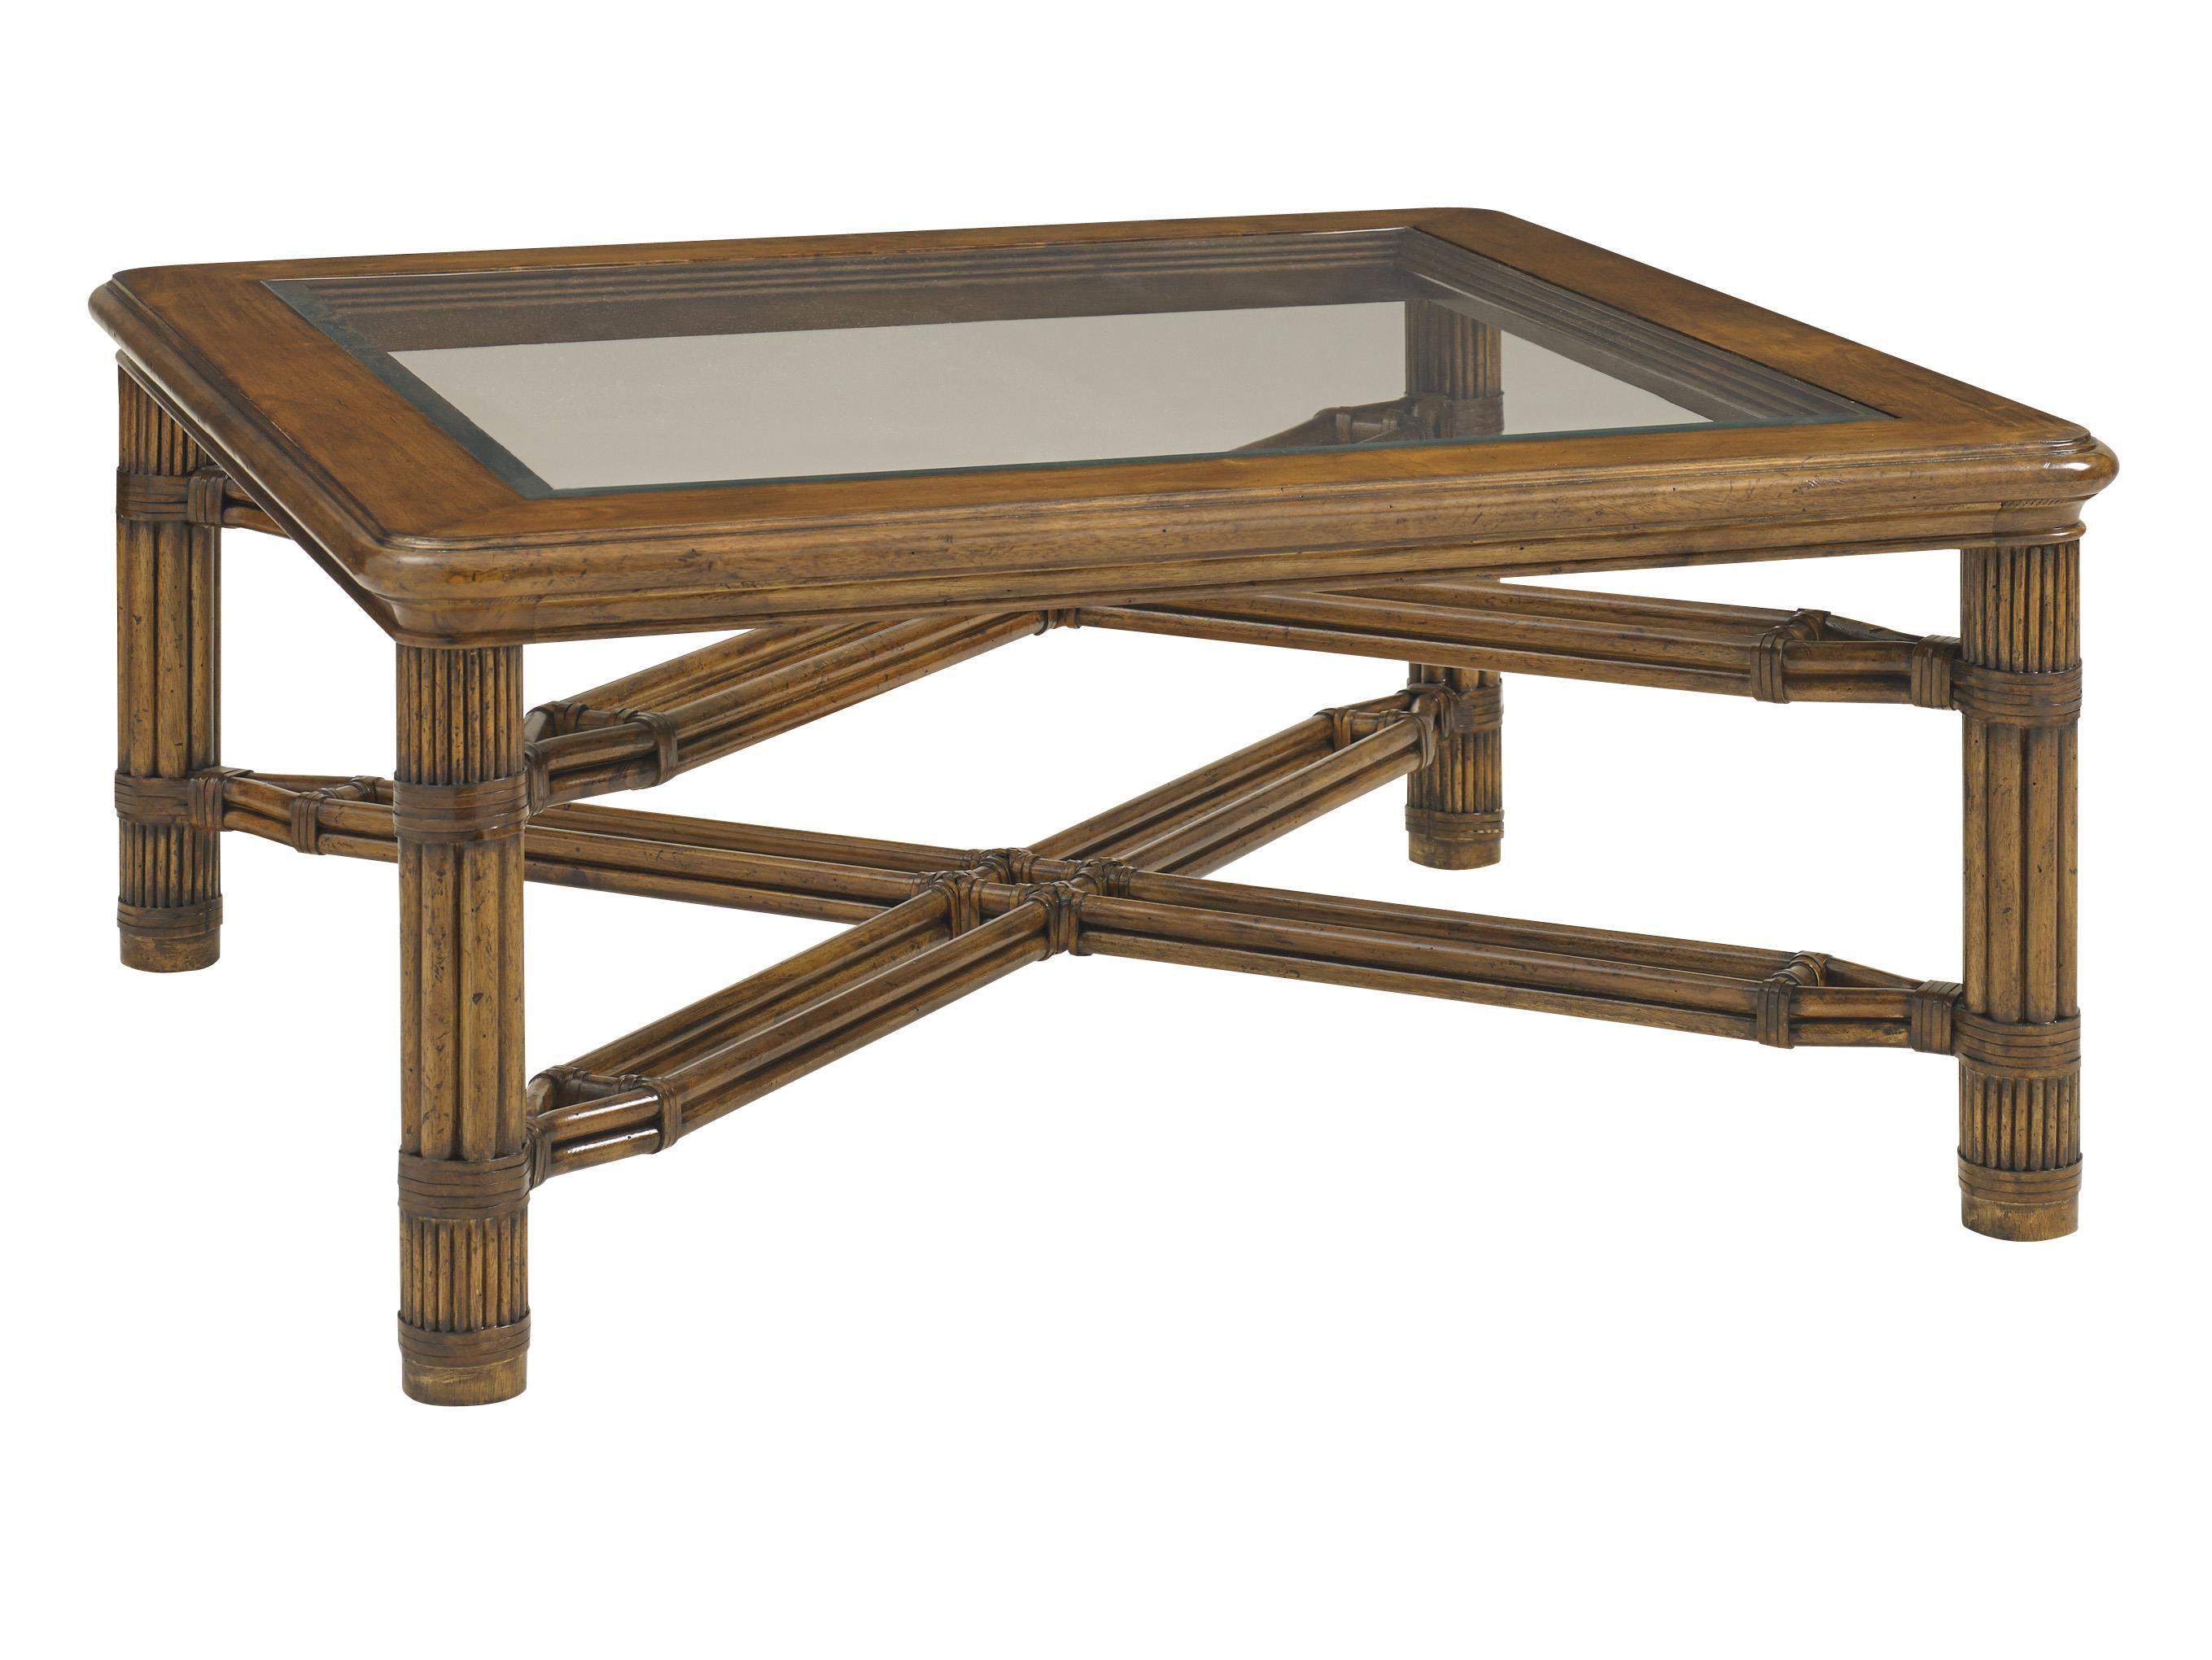 Bali Hai Capri Square Cocktail Table by Tommy Bahama Home at Baer's Furniture